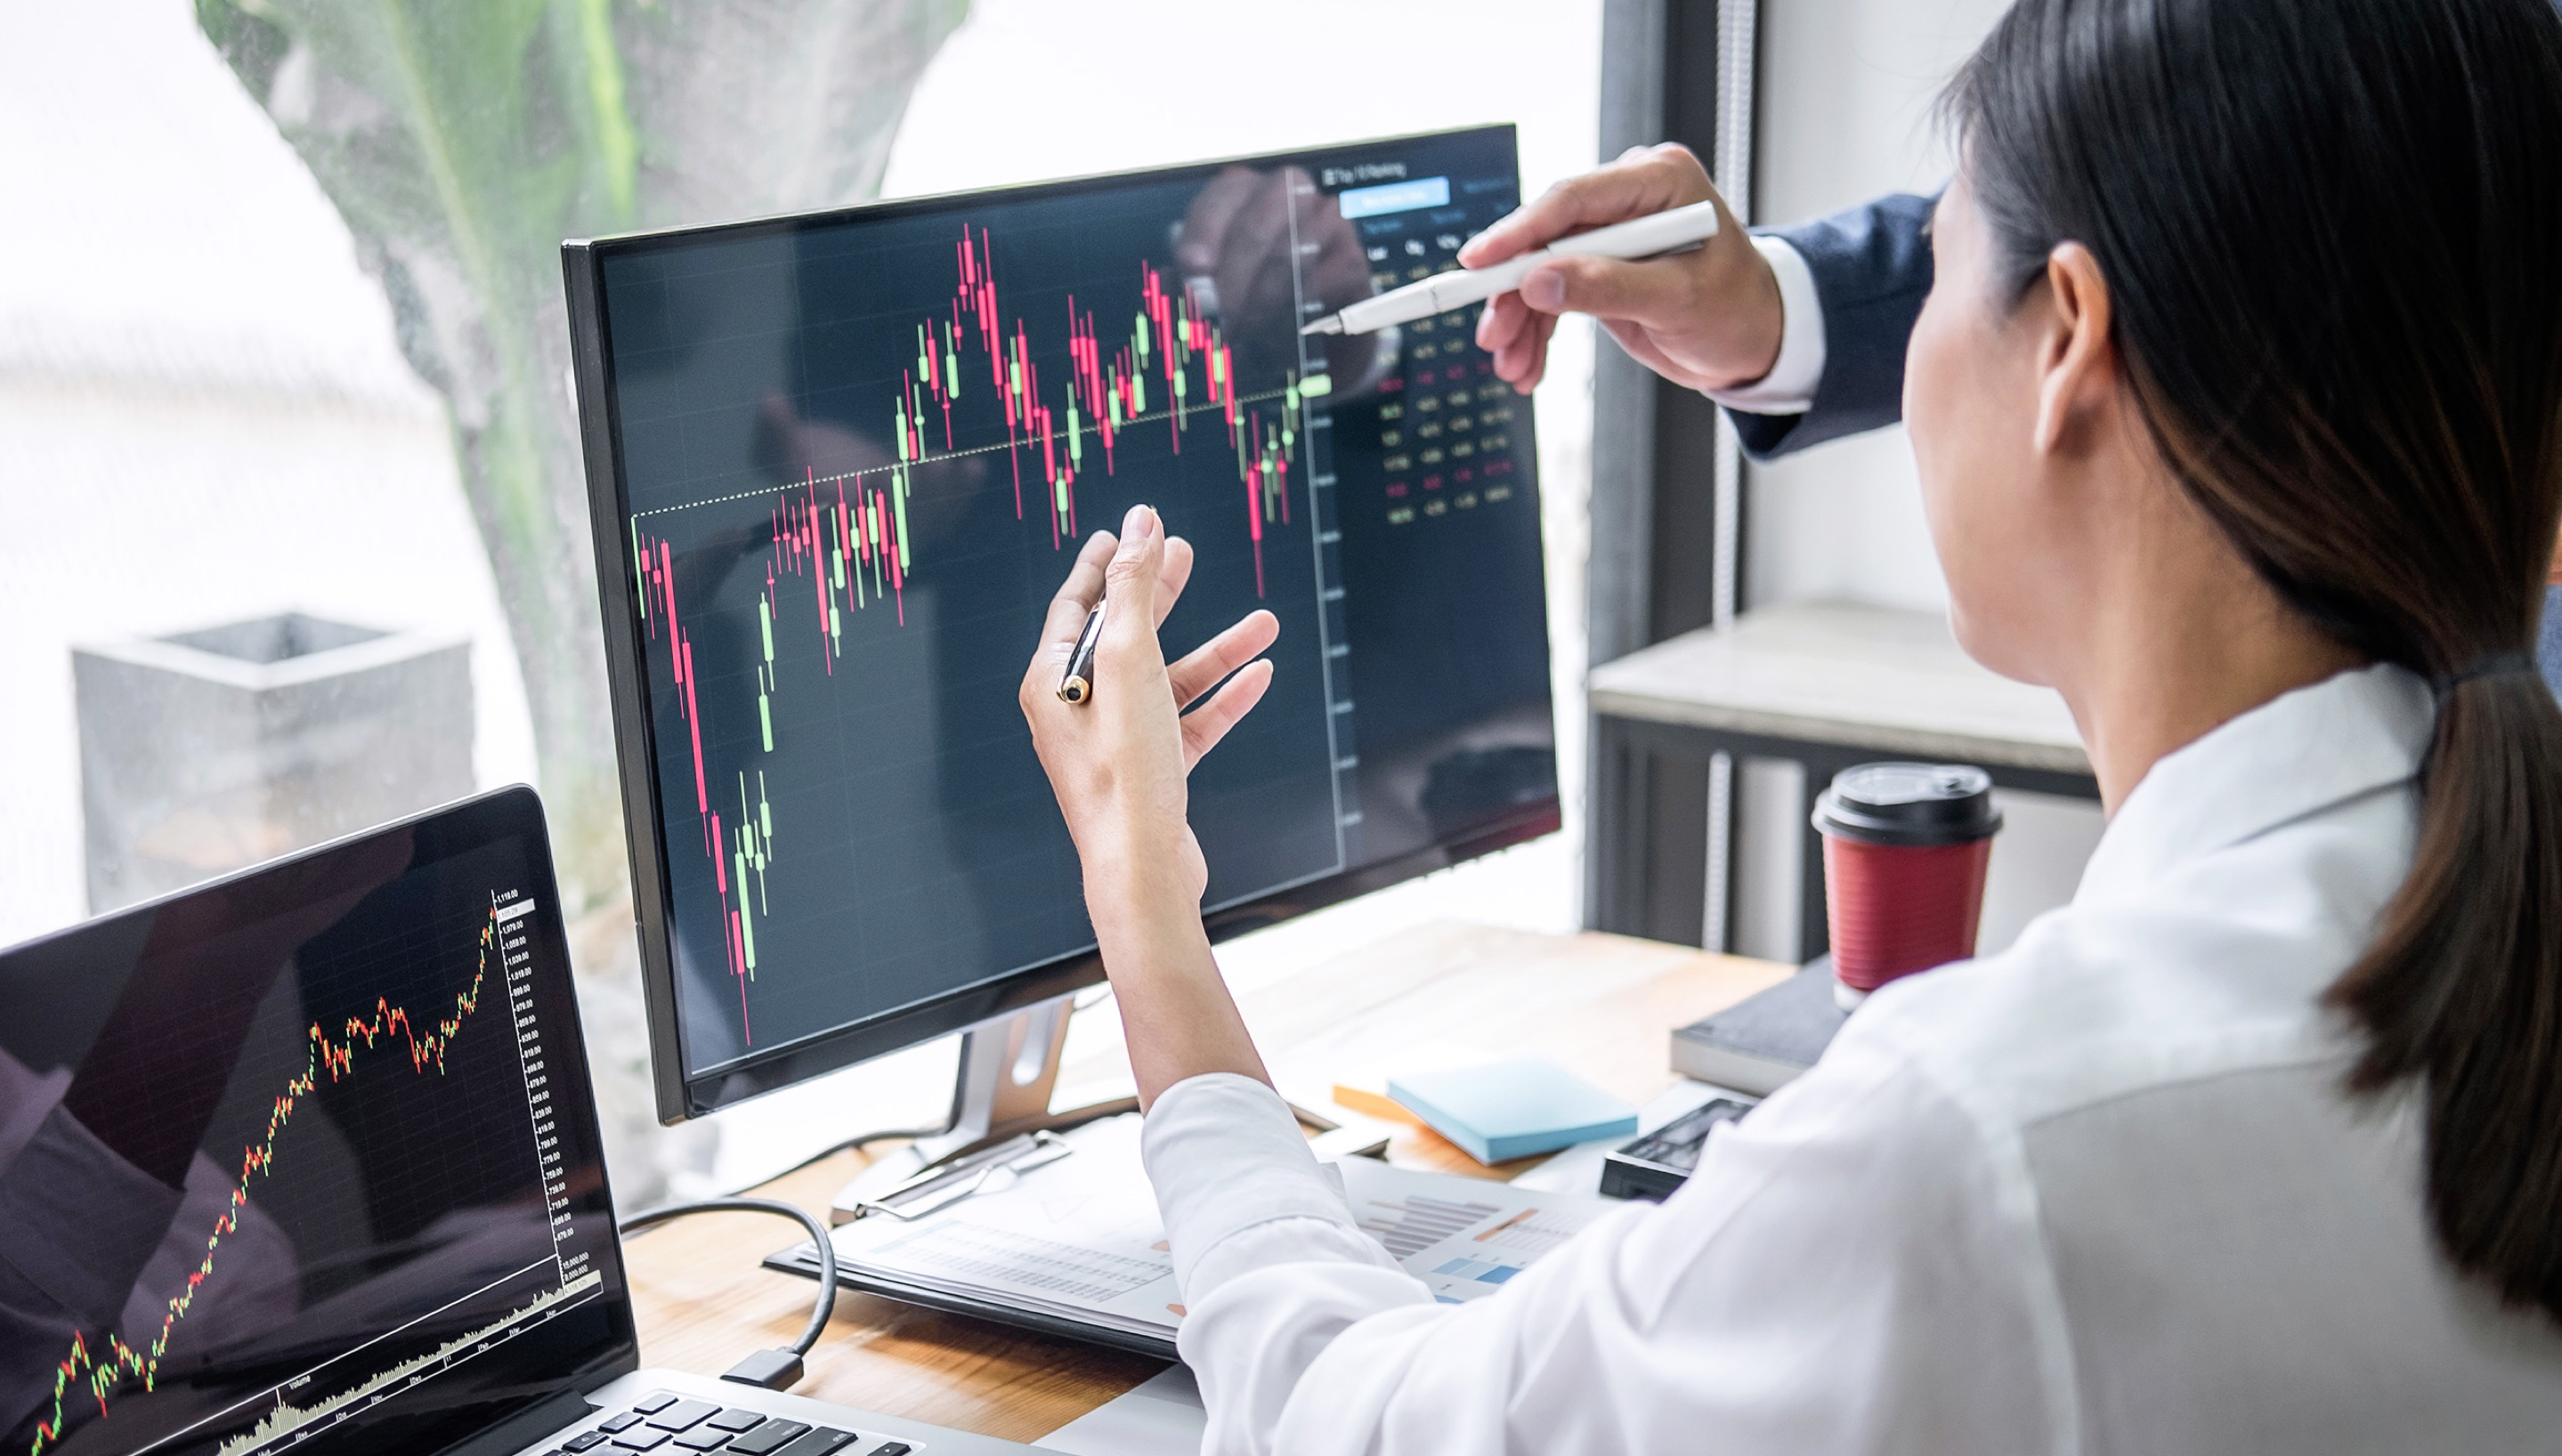 Woman working on a computer that has a stock trading chart